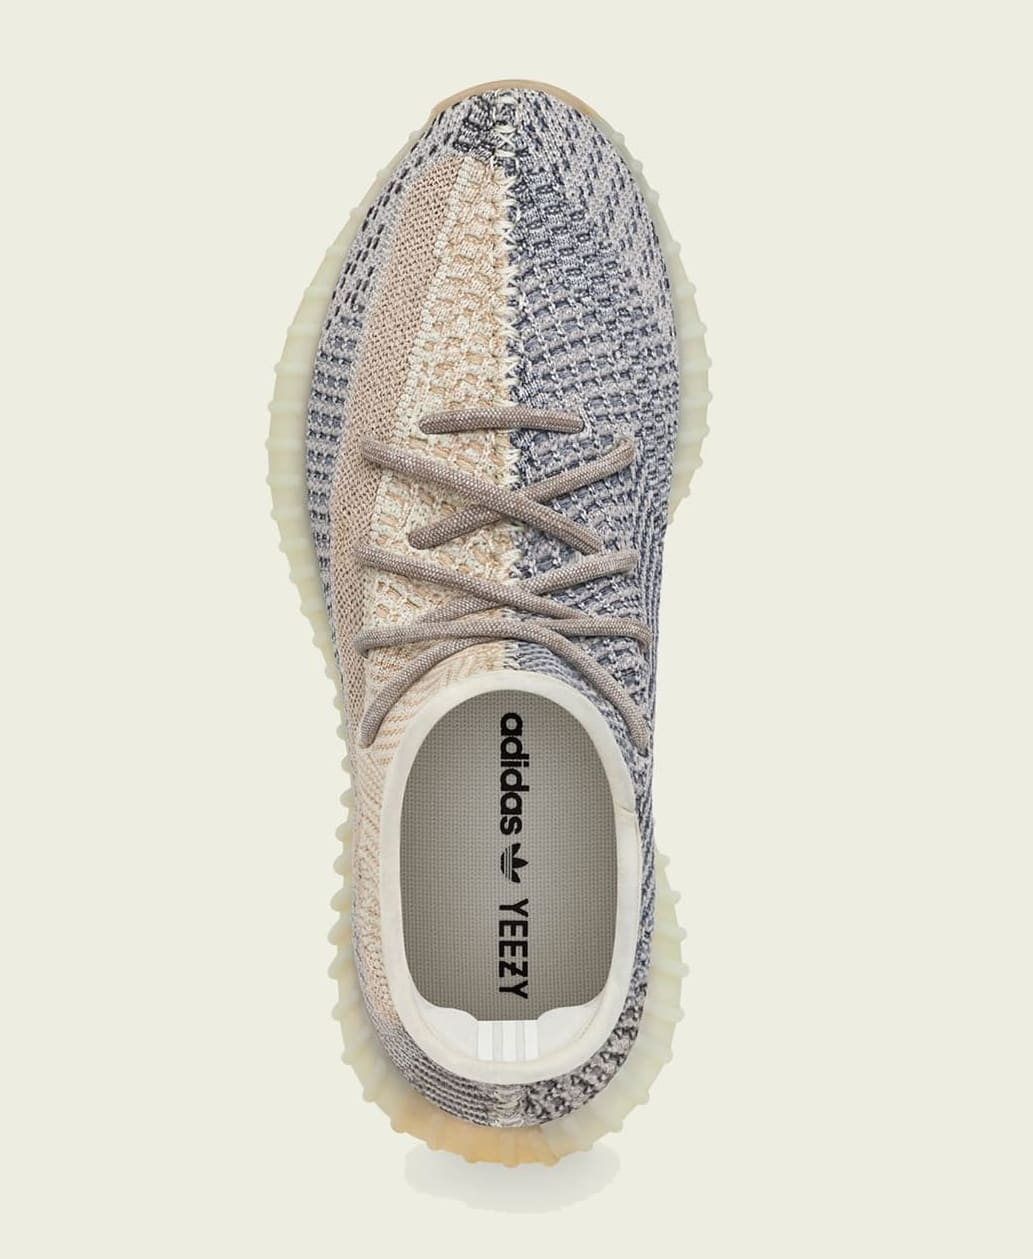 Adidas Yeezy Boost 350 V2 'Ash Pearl' GY7658 Top